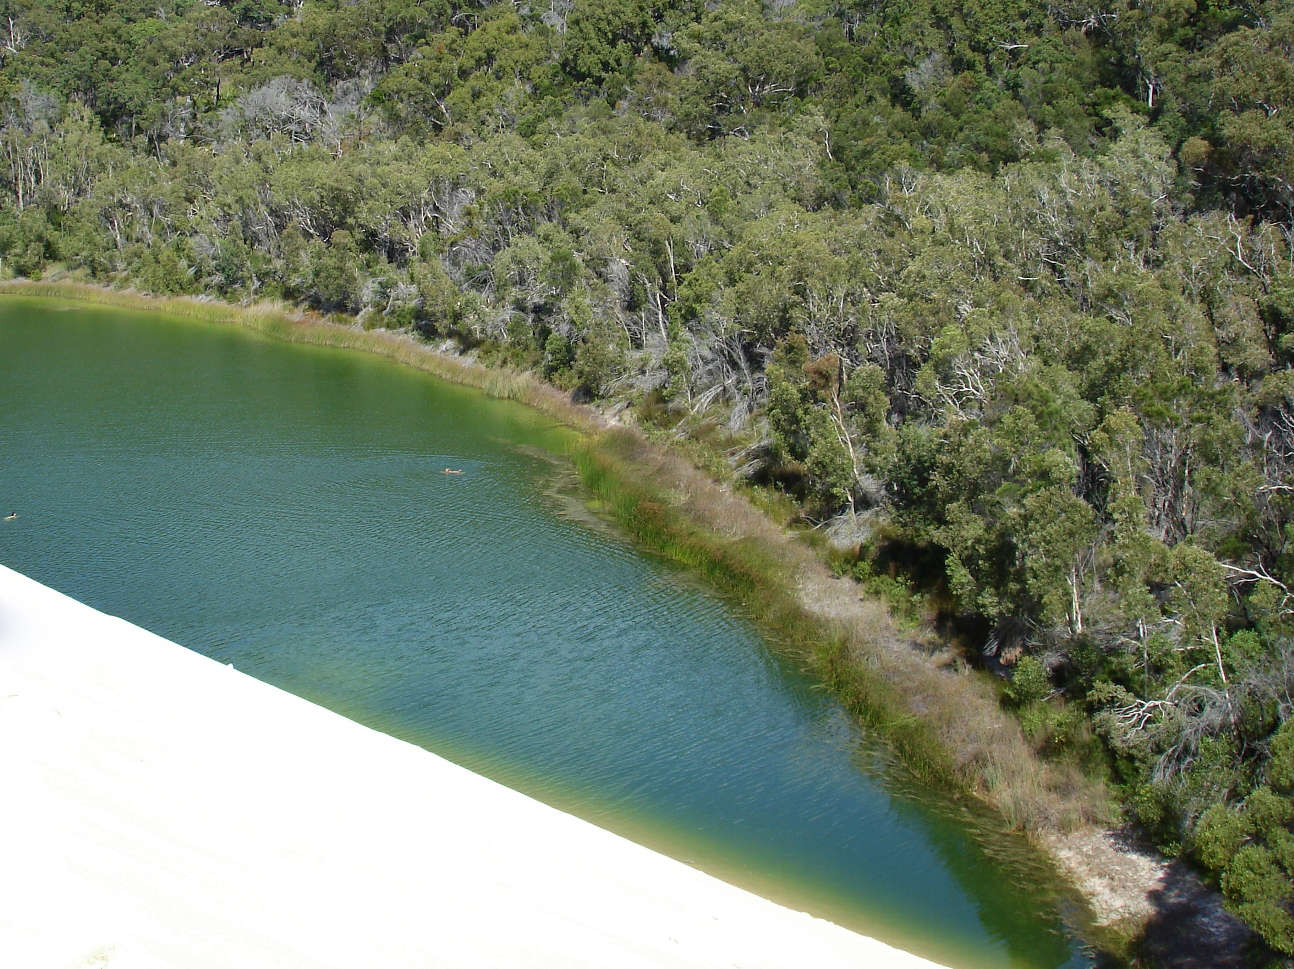 Lake Wabby from above